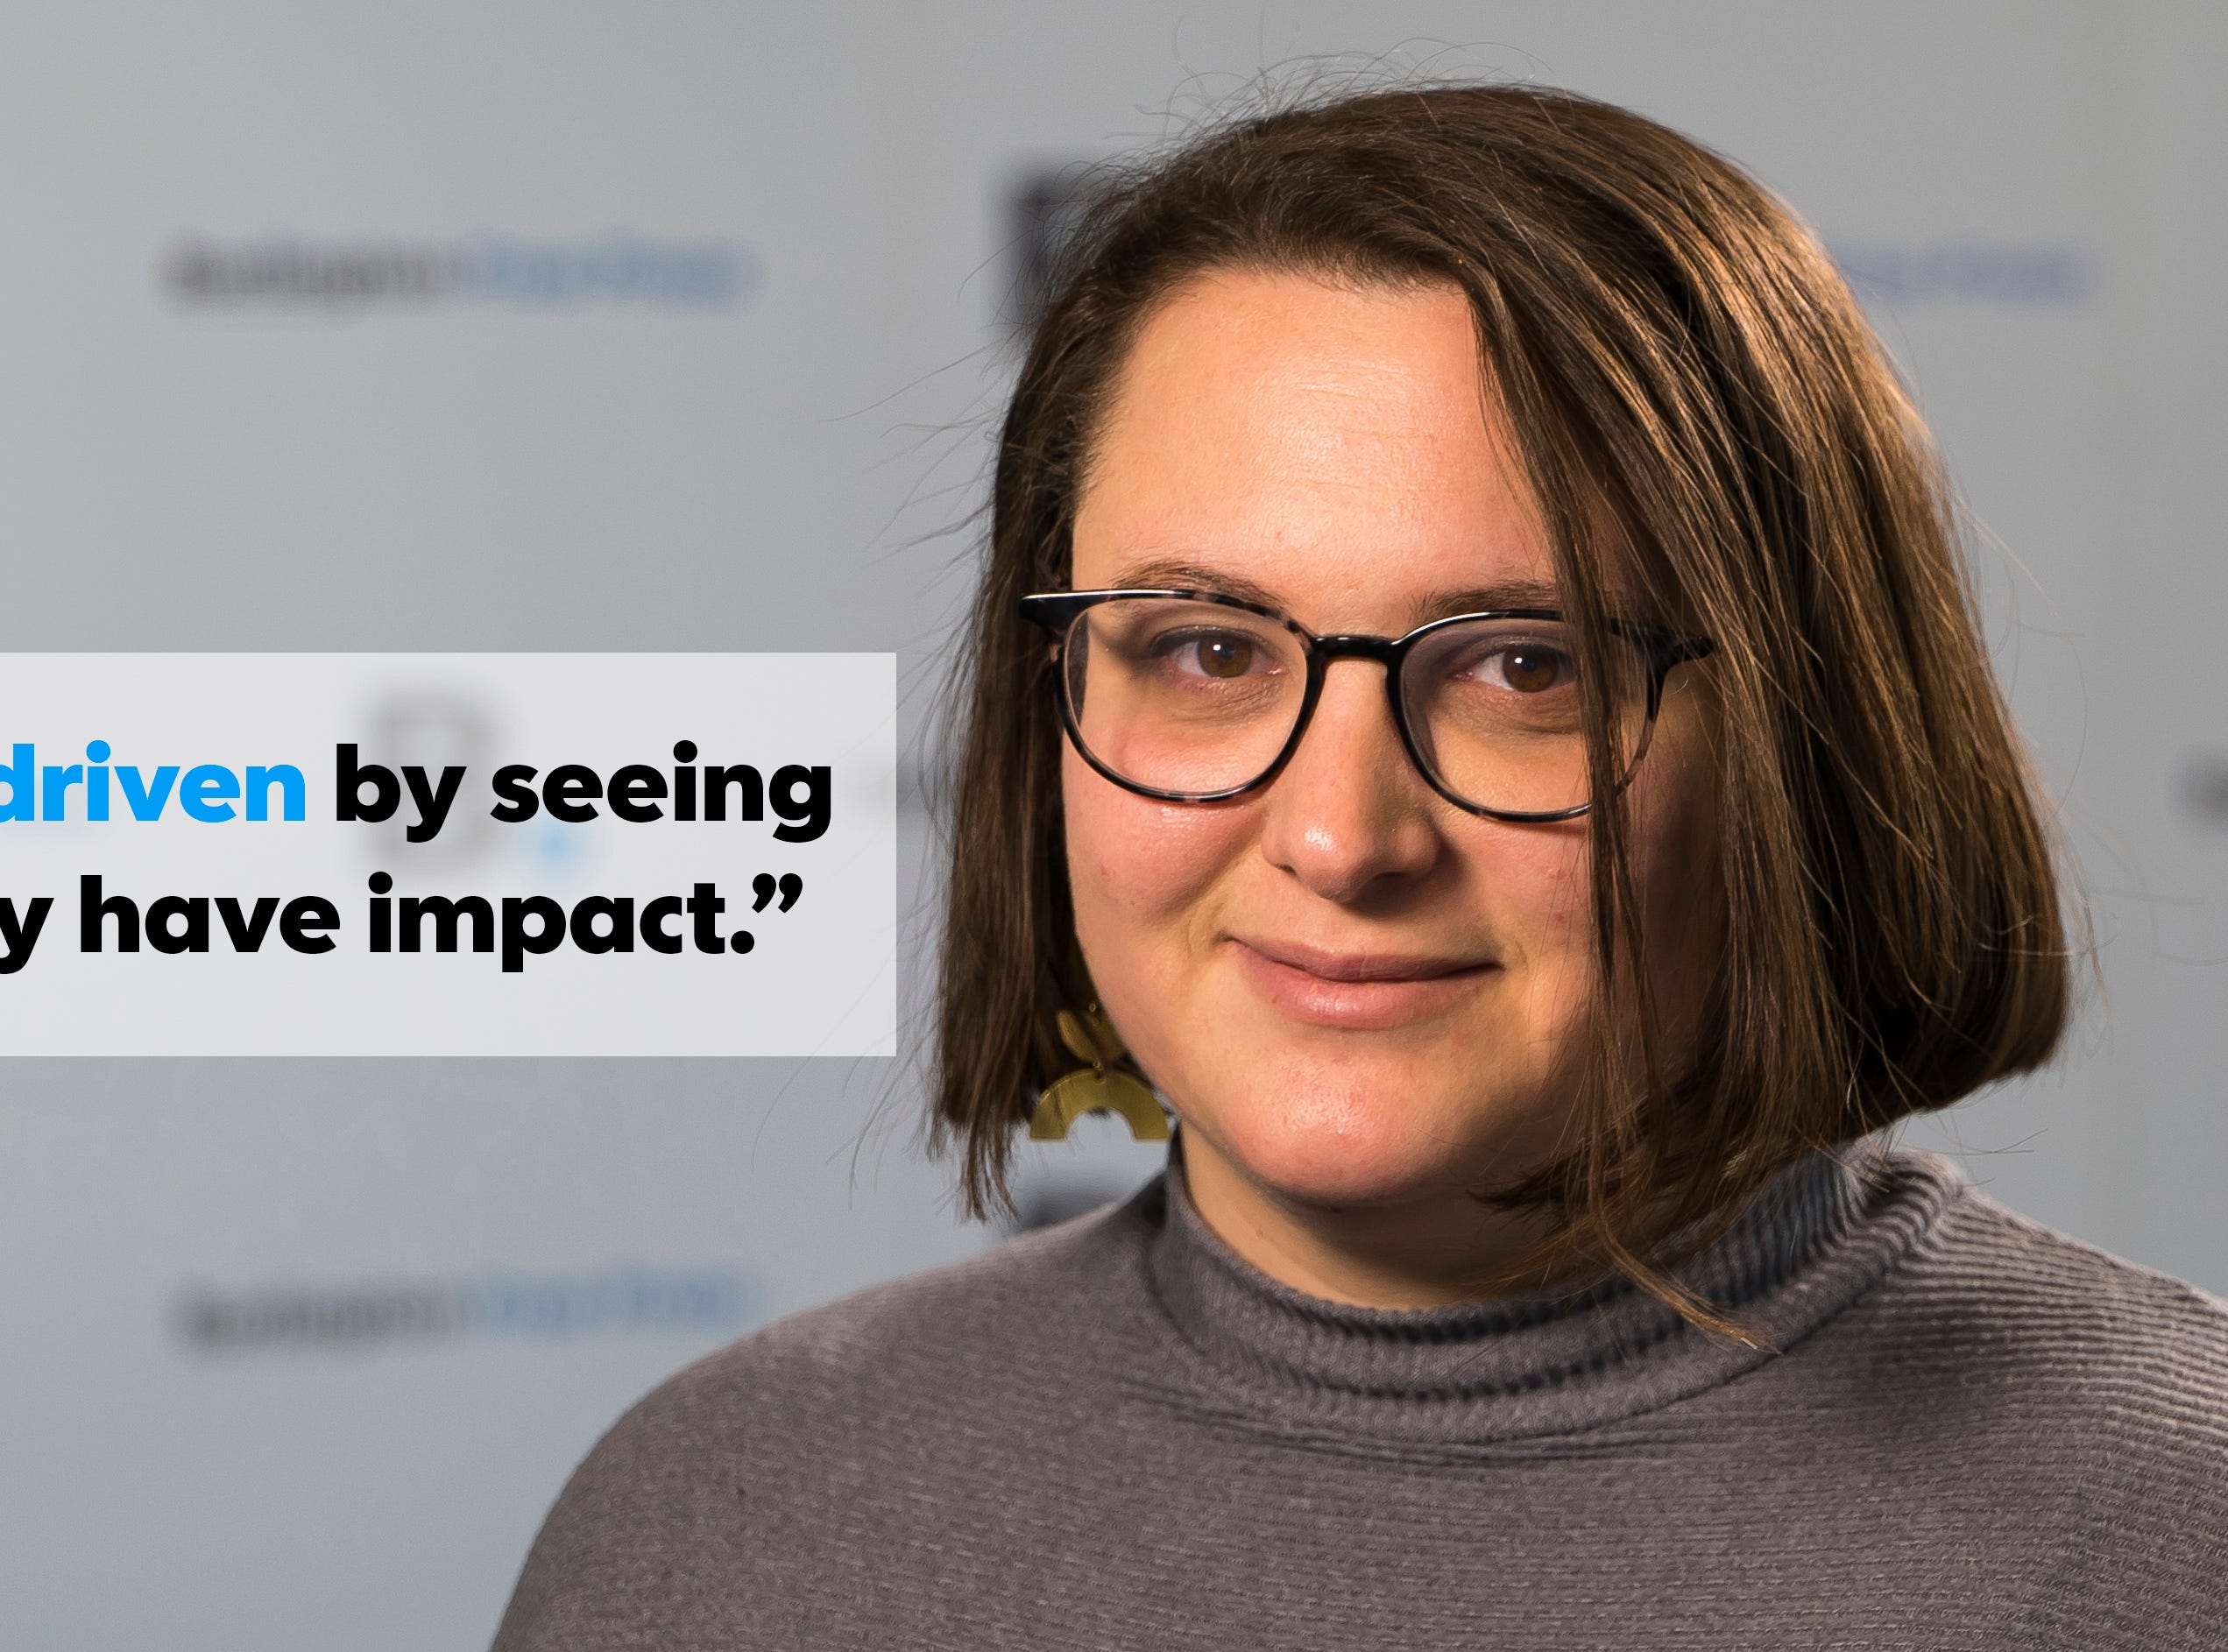 Jess Aloe started at the Free Press in 2016 and has a passion for in-depth and watchdog reporting. She believes in connecting individual stories to systemic issues and in prying loose public documents from the government's grip.